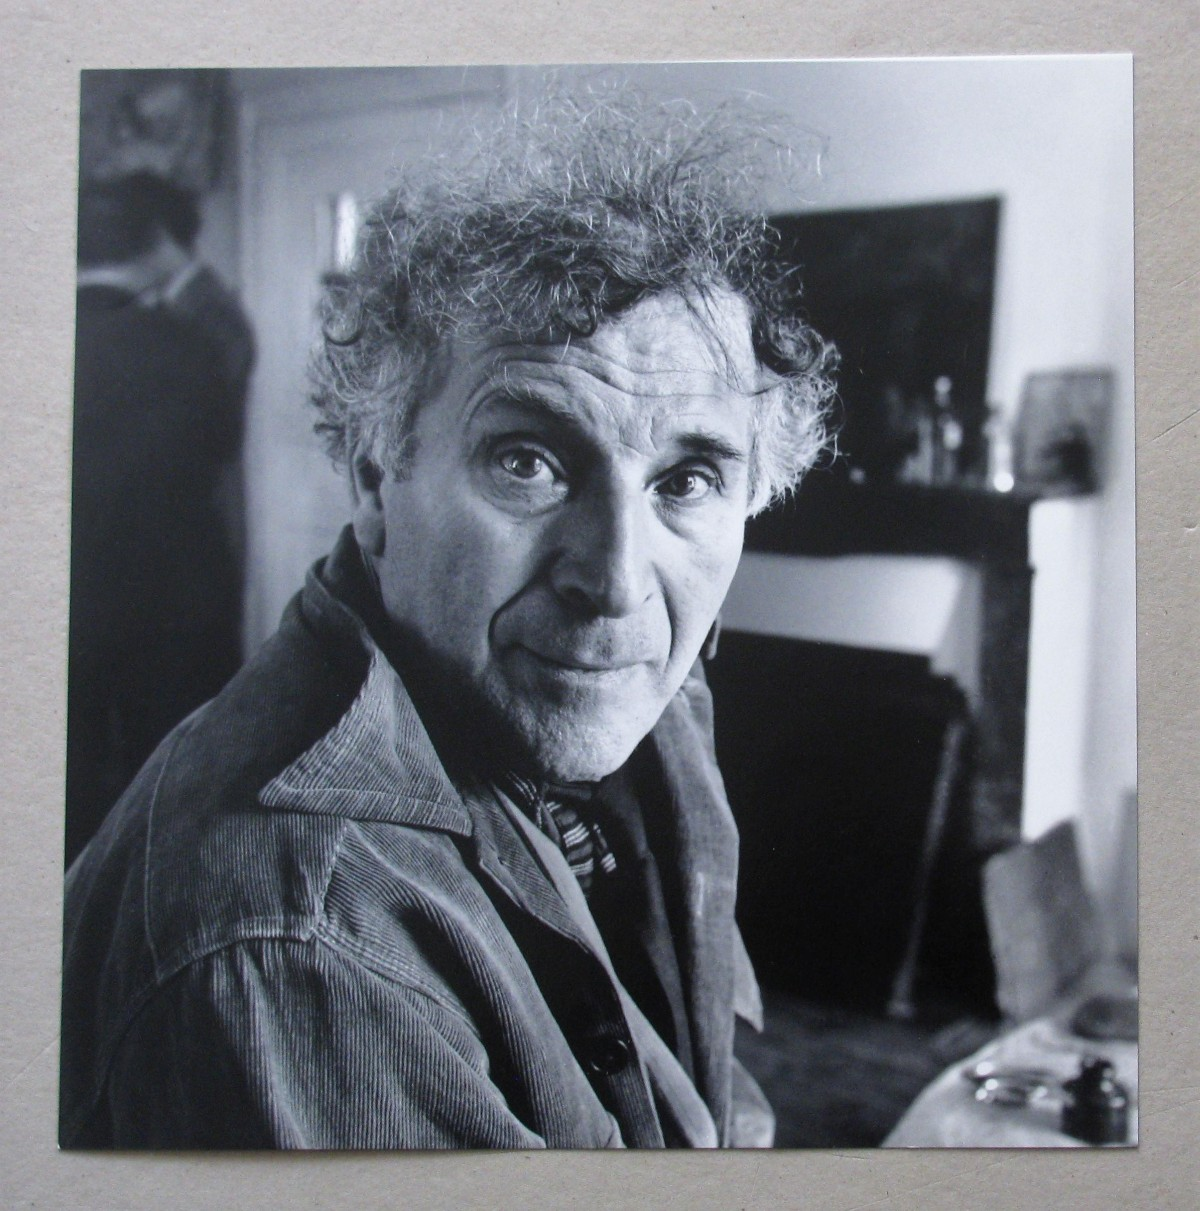 Willy Maywald - MARC CHAGALL in seinem Haus . WILLY MAYWALD . 1948/1989 kopen? Bied vanaf 160!